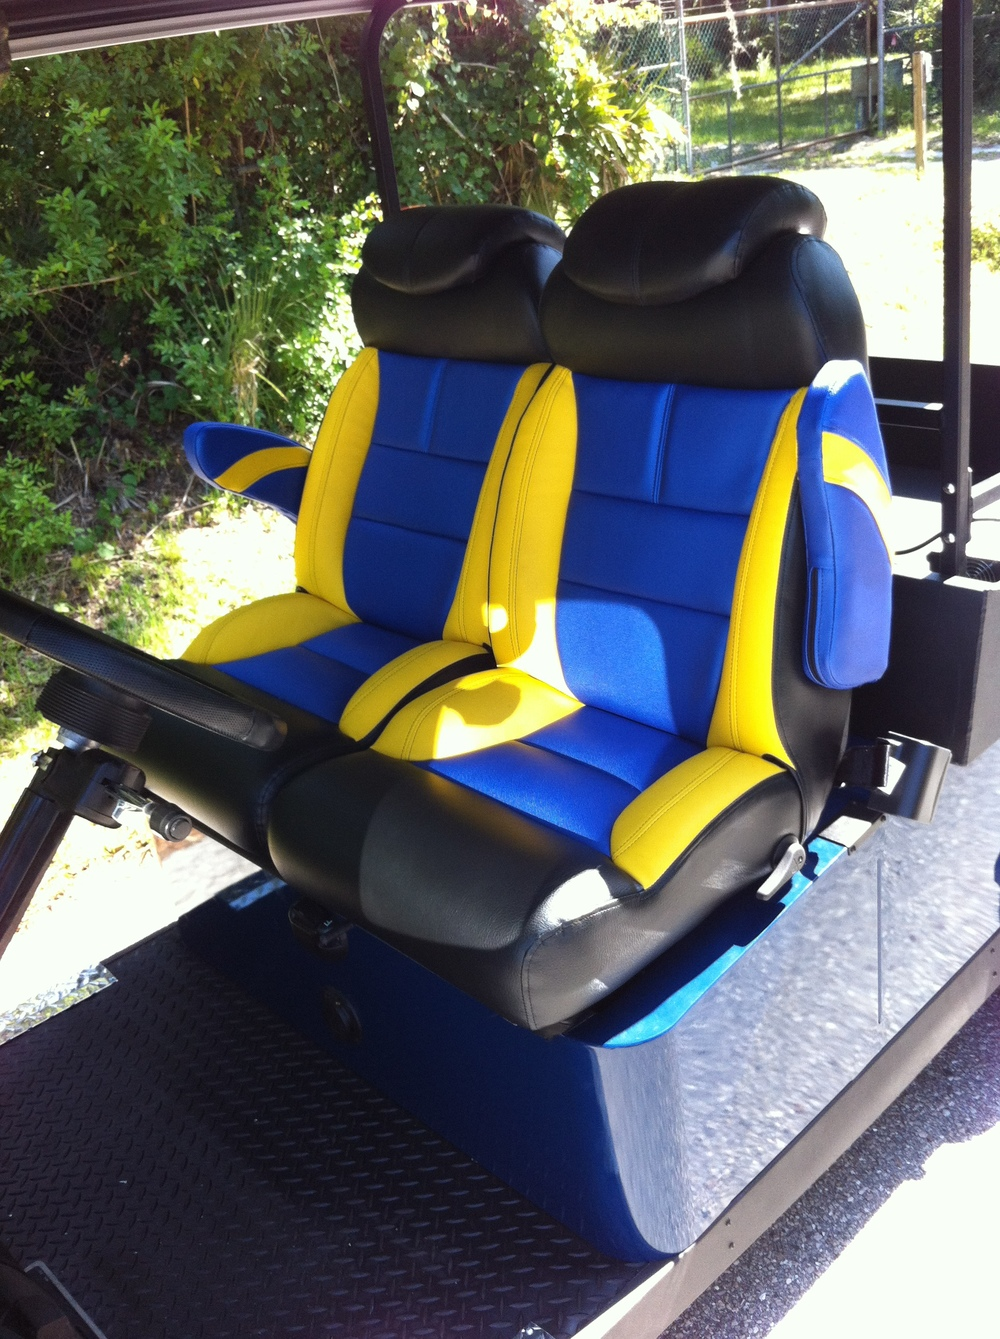 Cruise in style and comfort with adjustable reclining bucket seats!